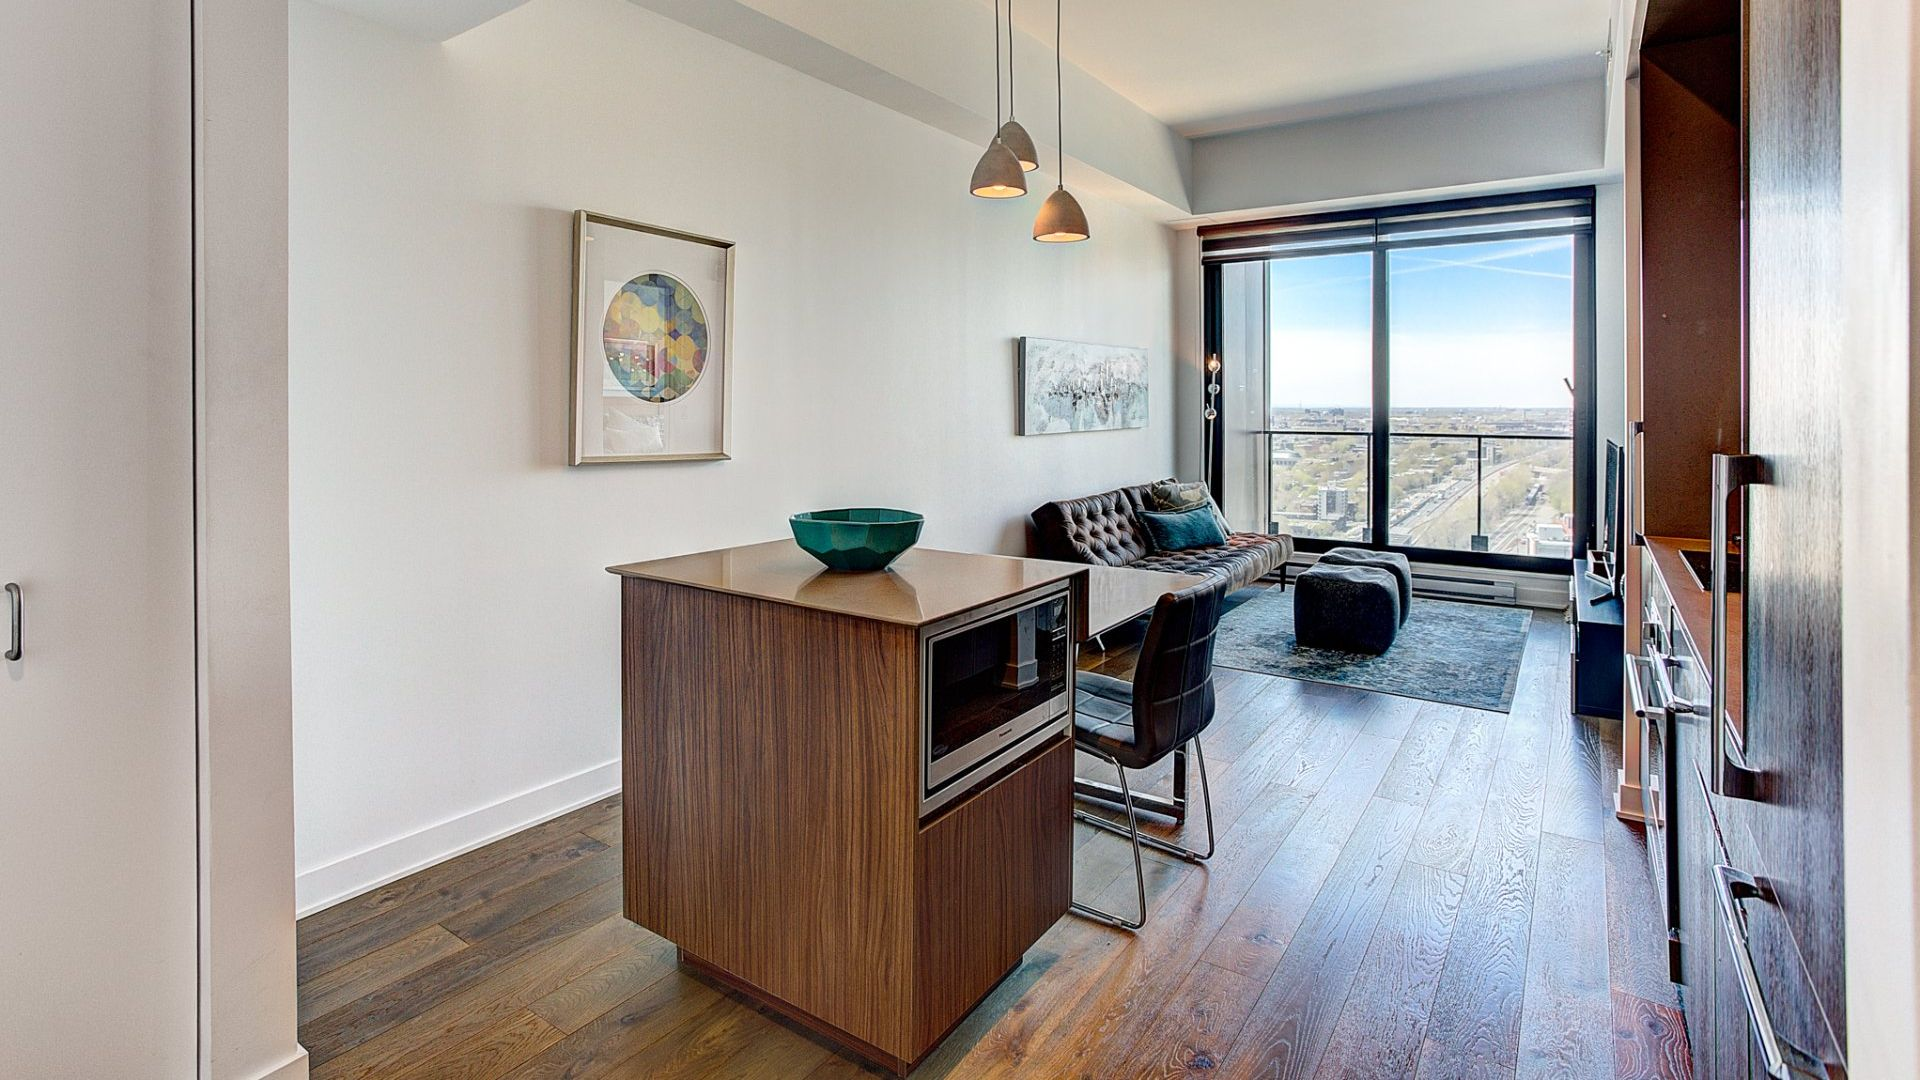 1 bed apartment at Montreal, QC, Canada | #7830536 | Rentberry